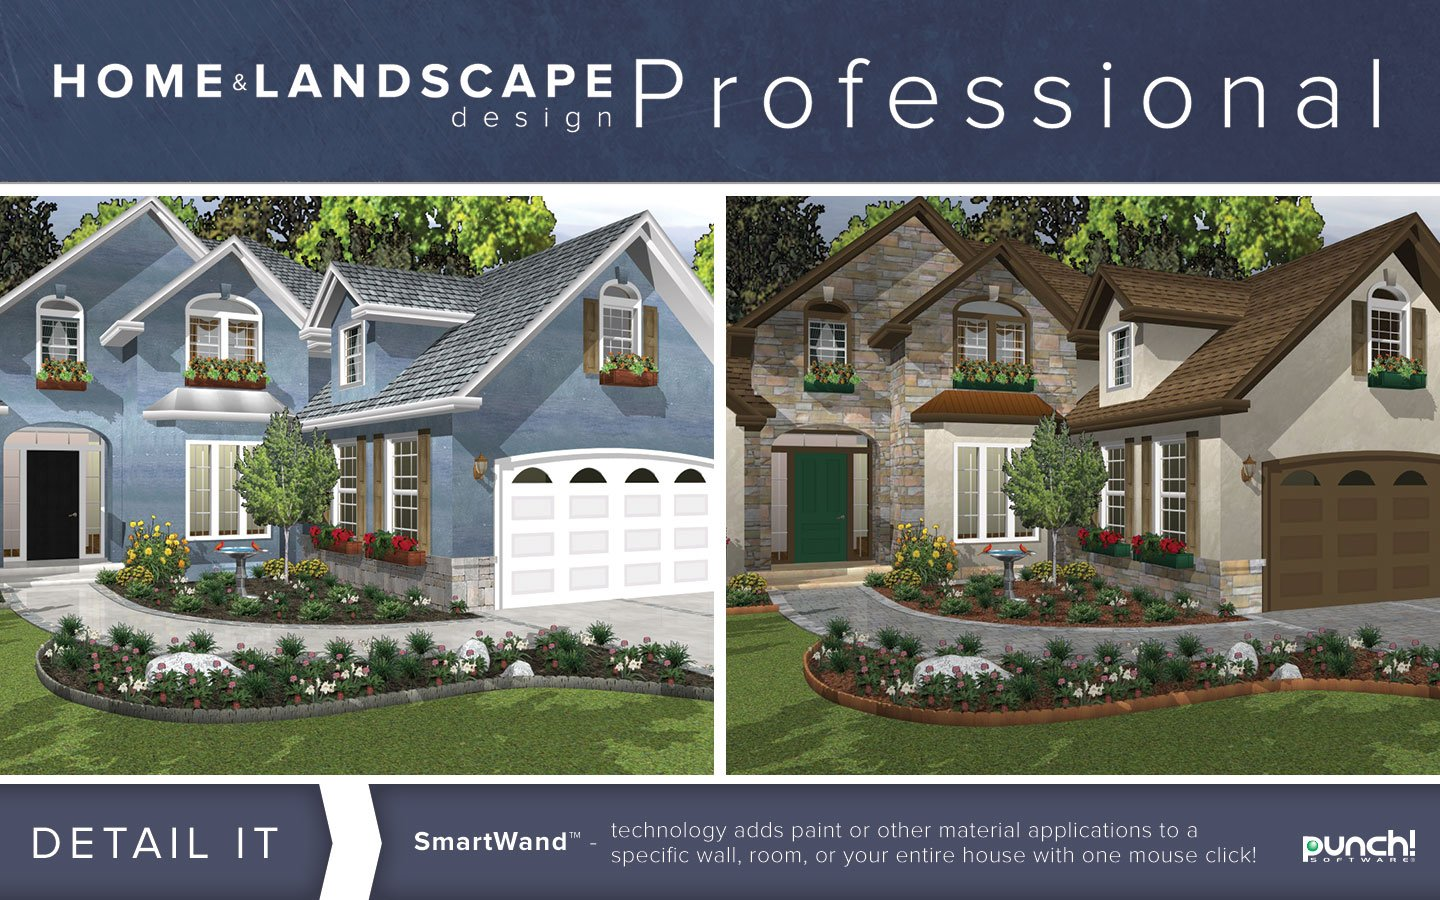 punch home and landscape design professional home and punch home and landscape design professional home and